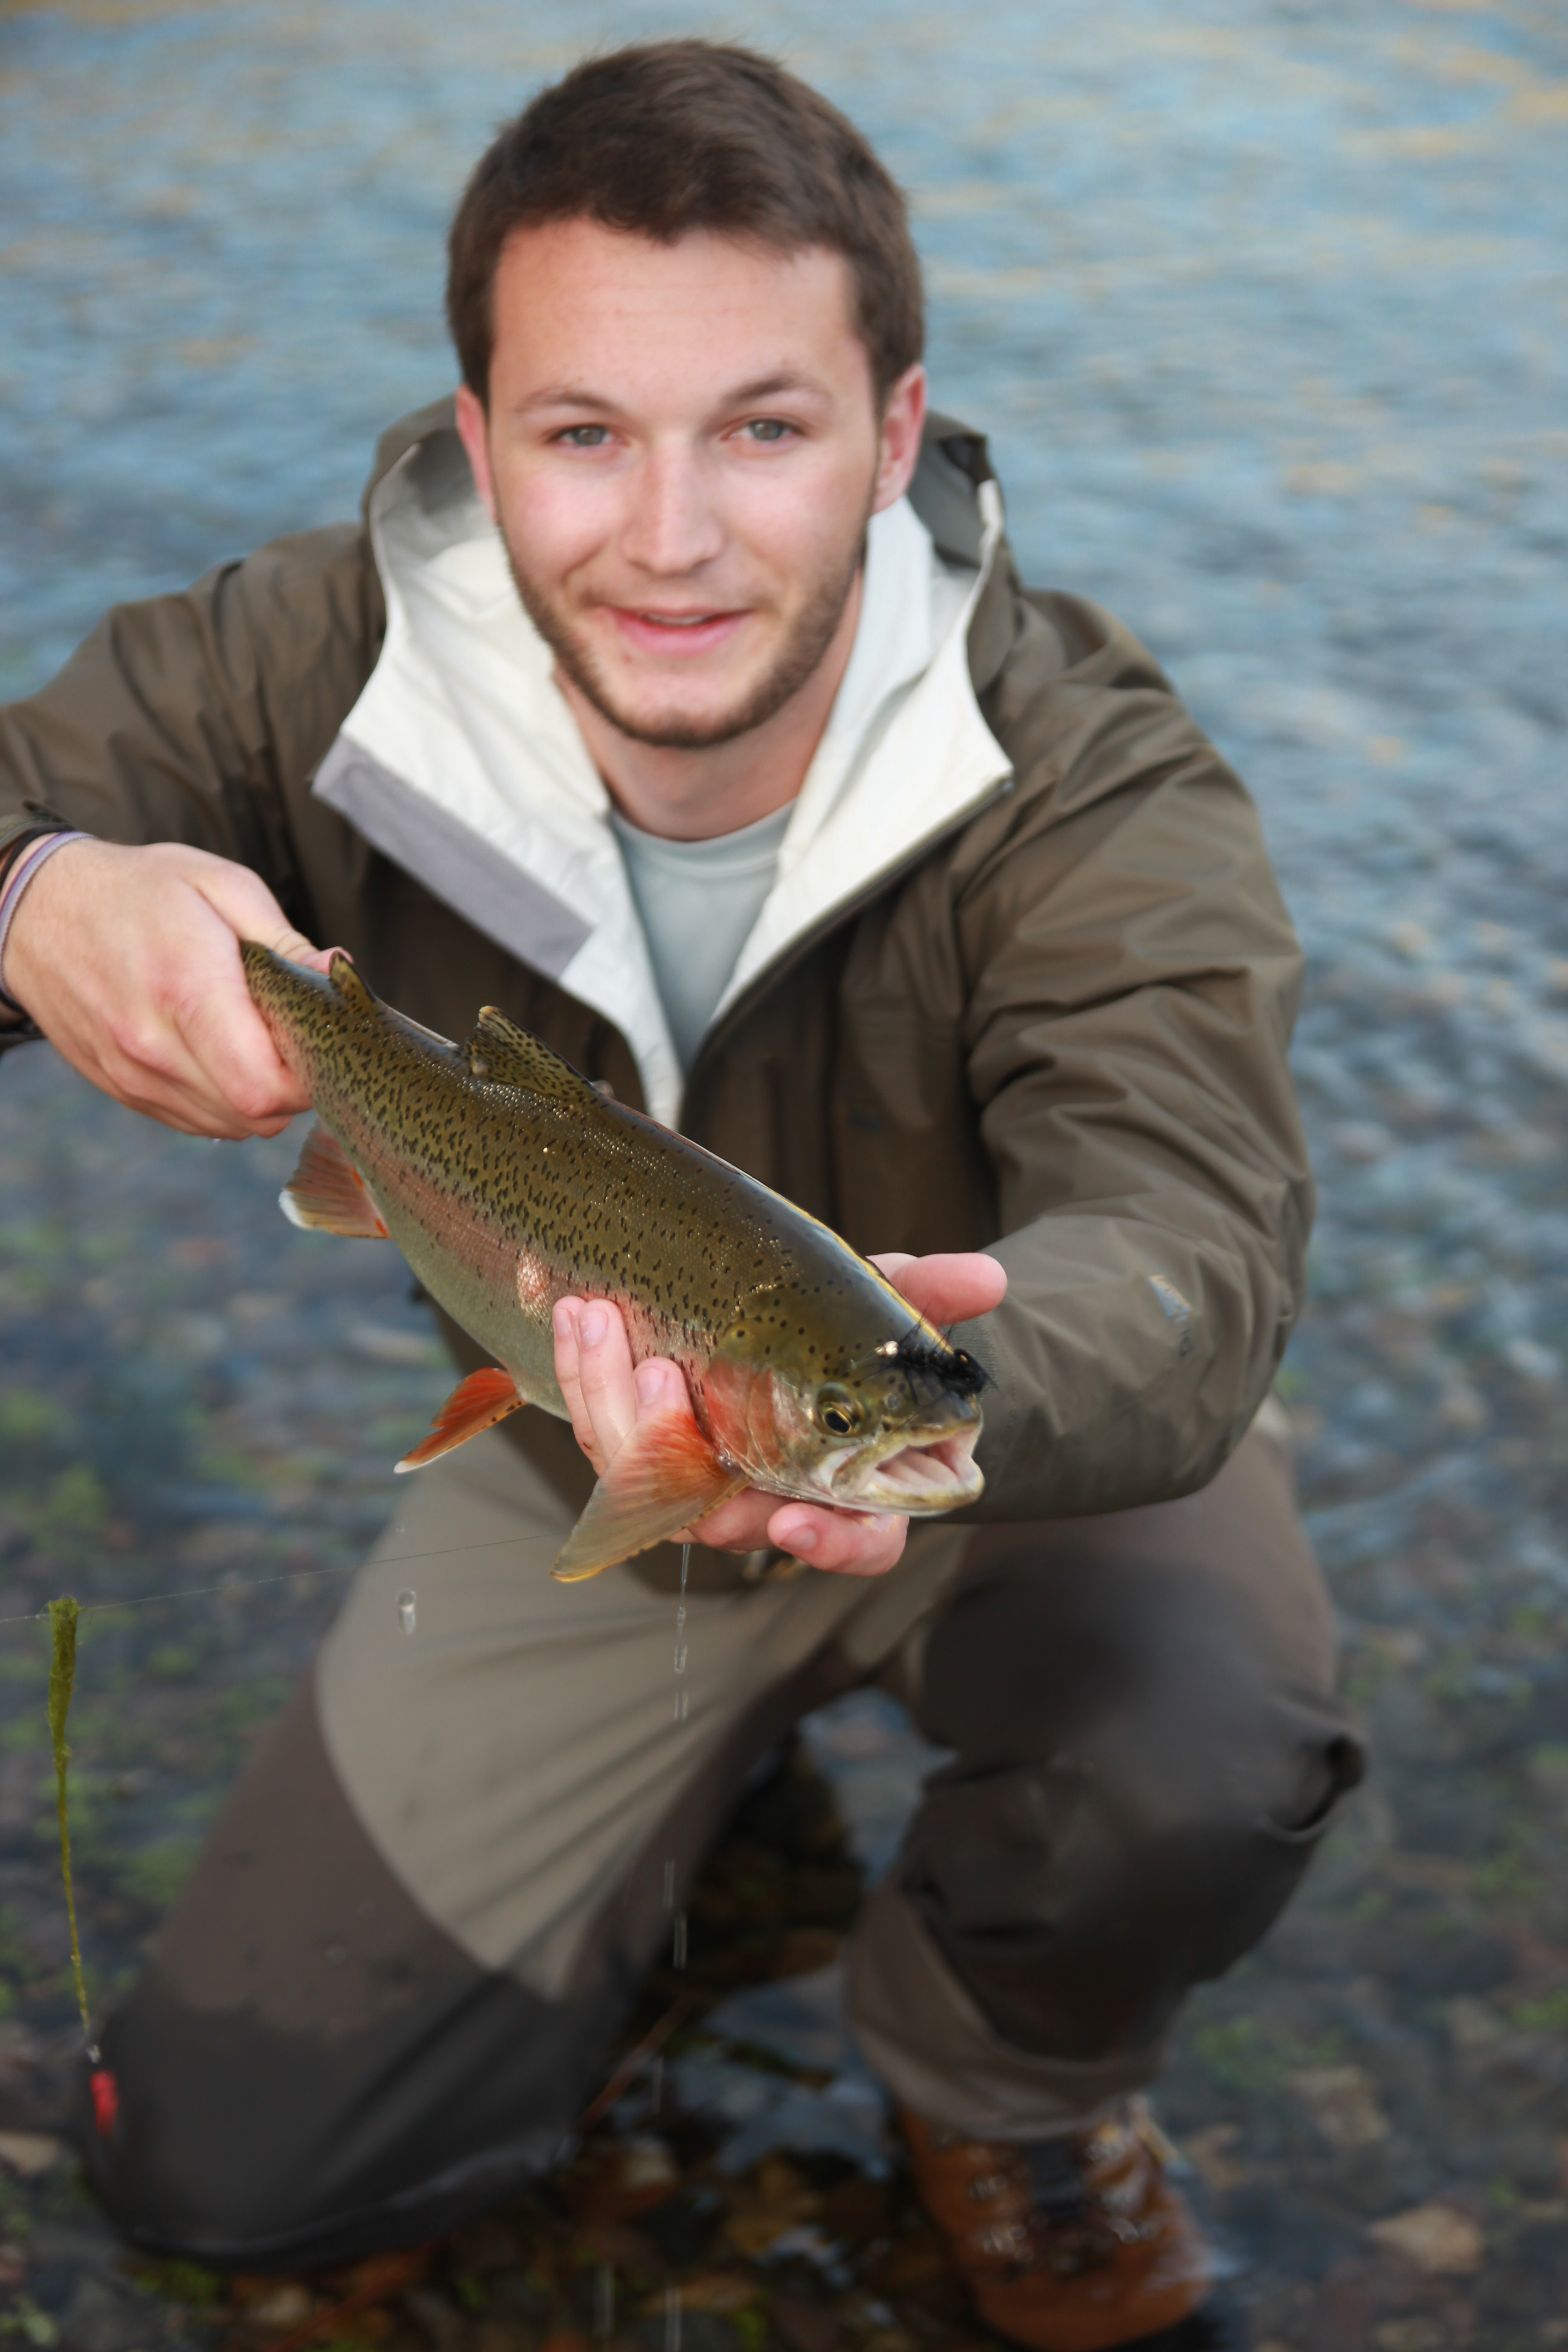 Fly fishing the most fun you can have in waders for Trout fishing in missouri